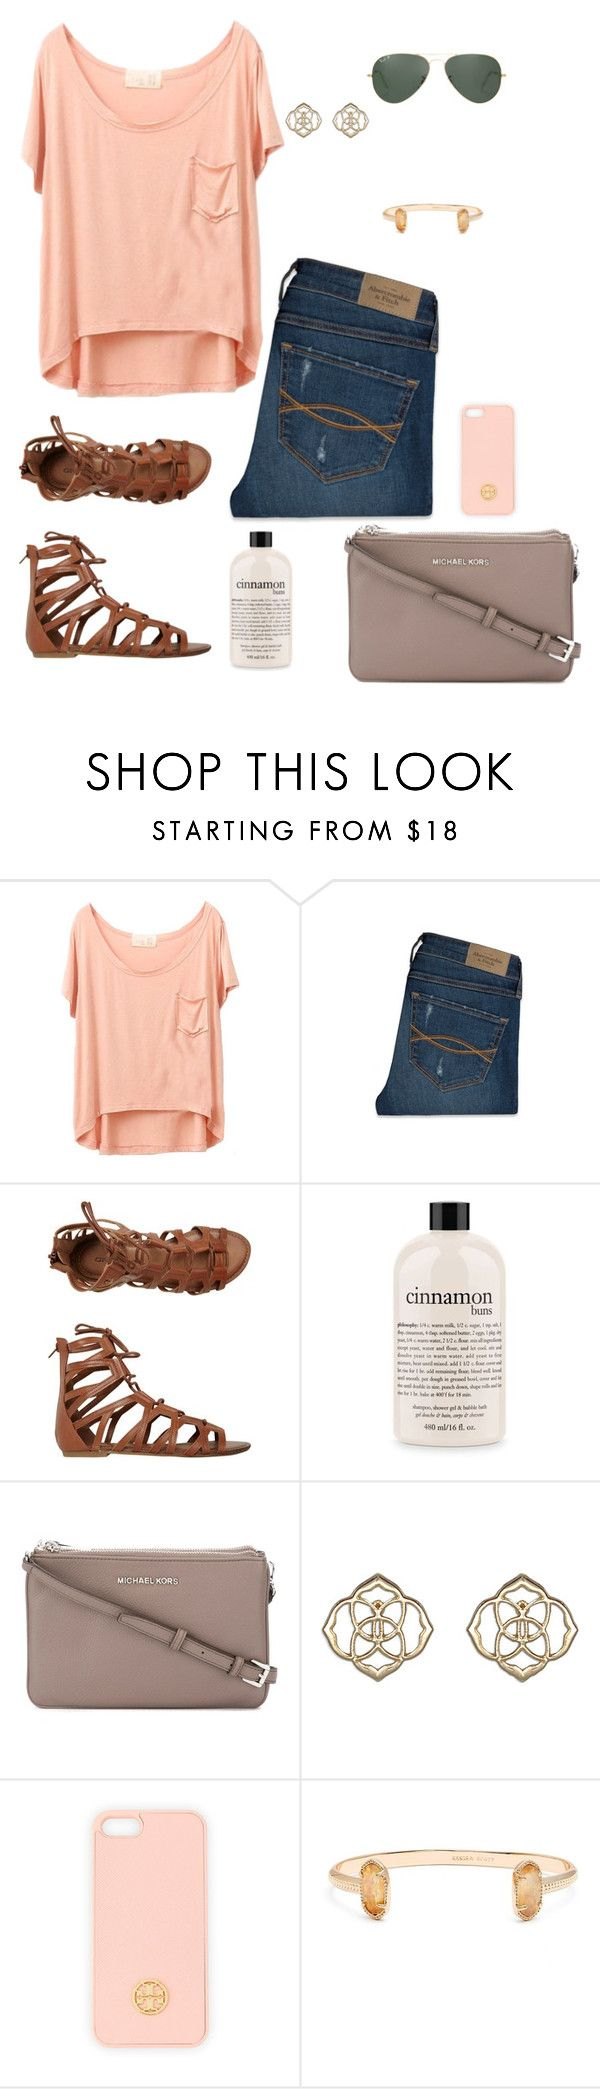 """""""Untitled #59"""" by annakhowton ❤ liked on Polyvore featuring Abercrombie & Fitch, O'Neill, philosophy, MICHAEL Michael Kors, Kendra Scott, Tory Burch and Ray-Ban"""